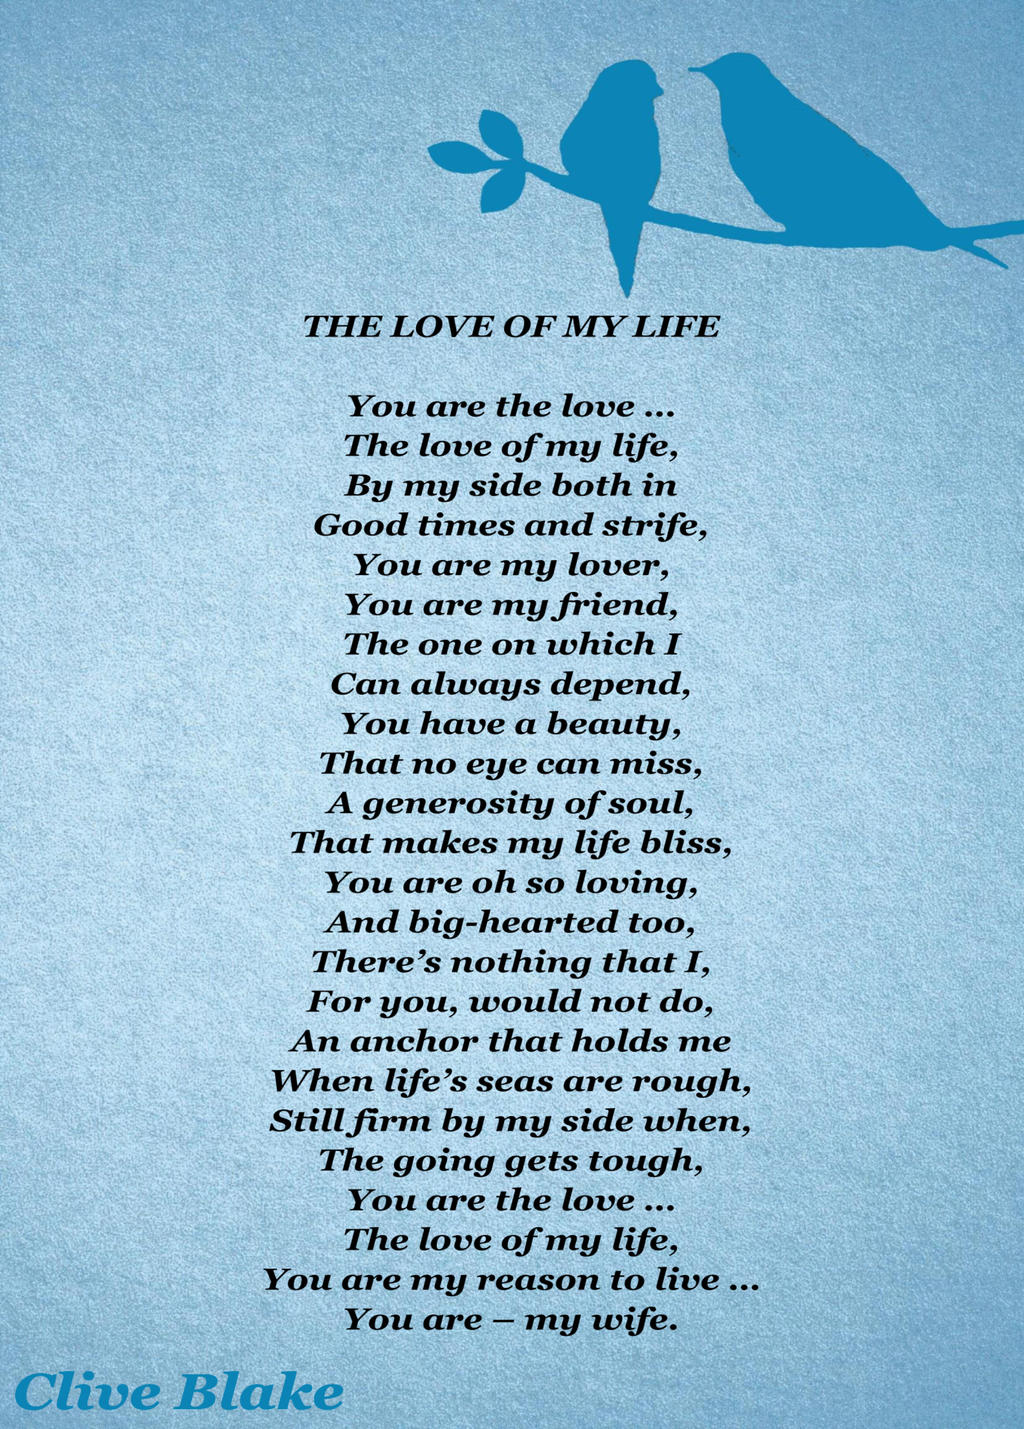 Life poem this is my And Then